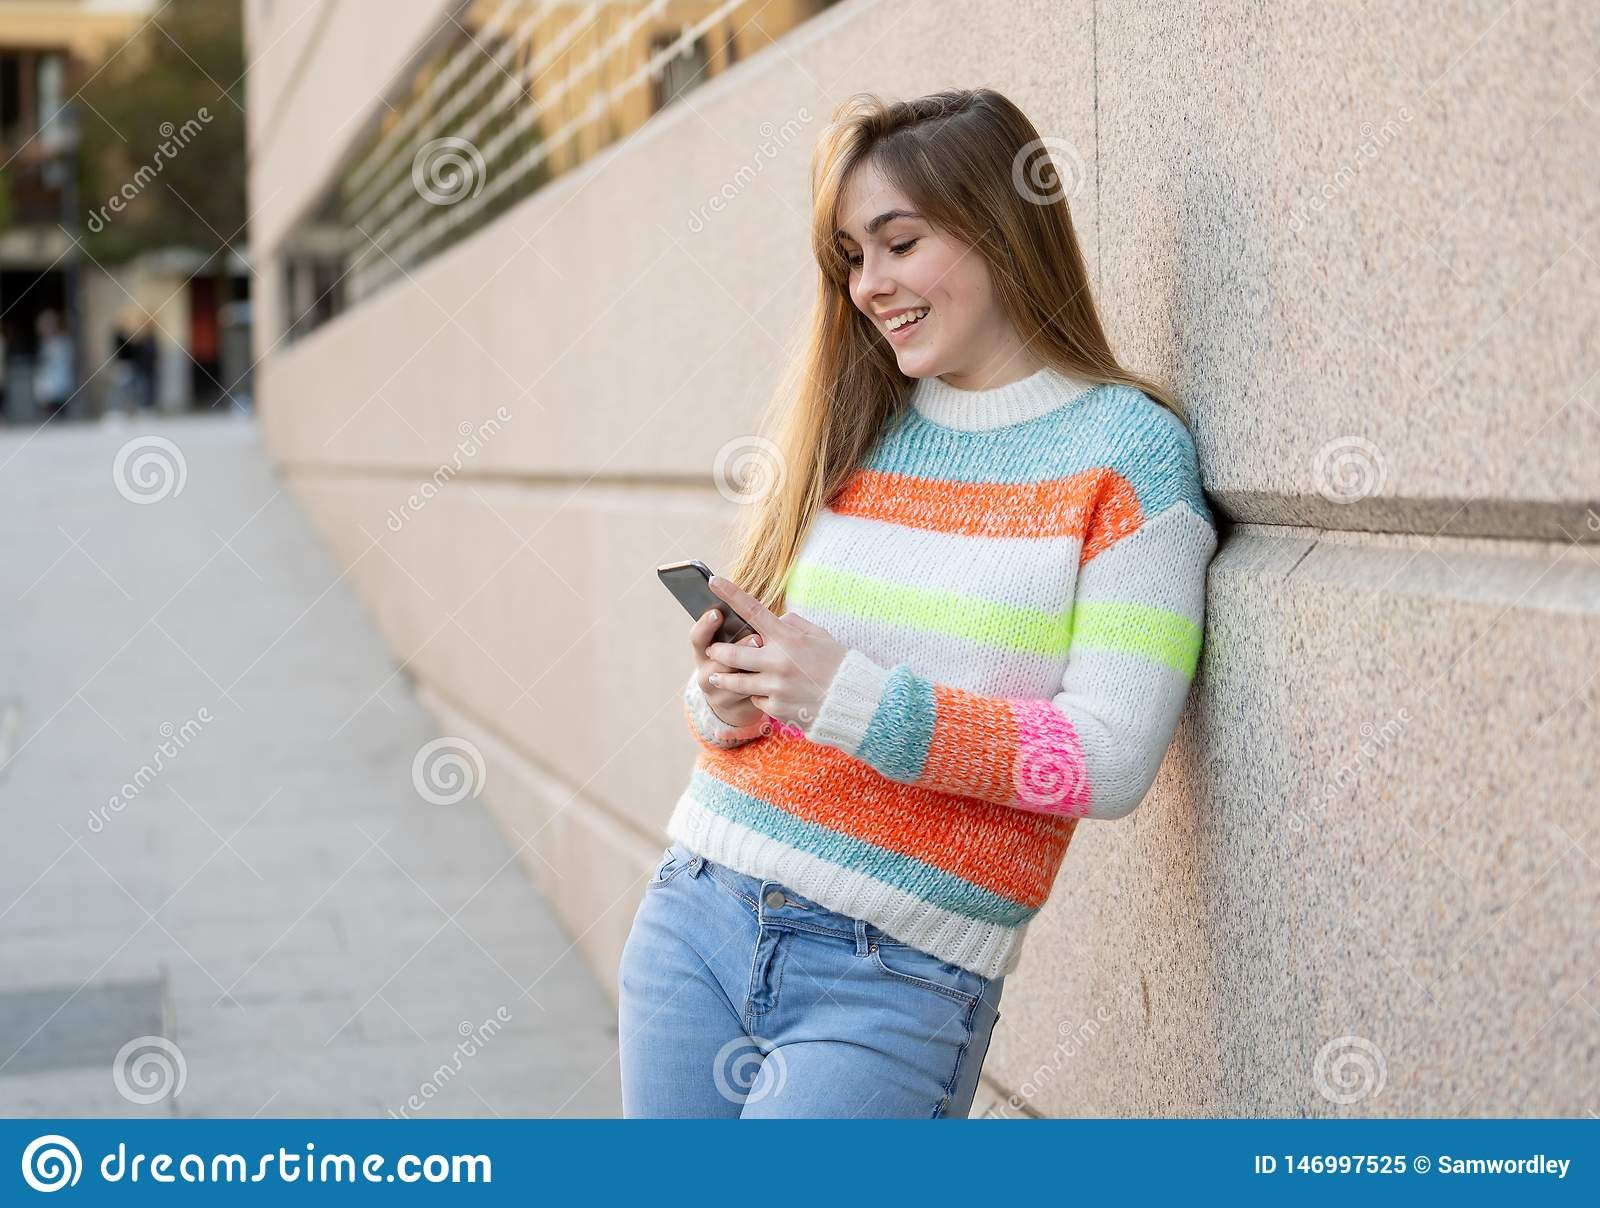 Attractive young woman on smart phone checking social media mobile apps outside city